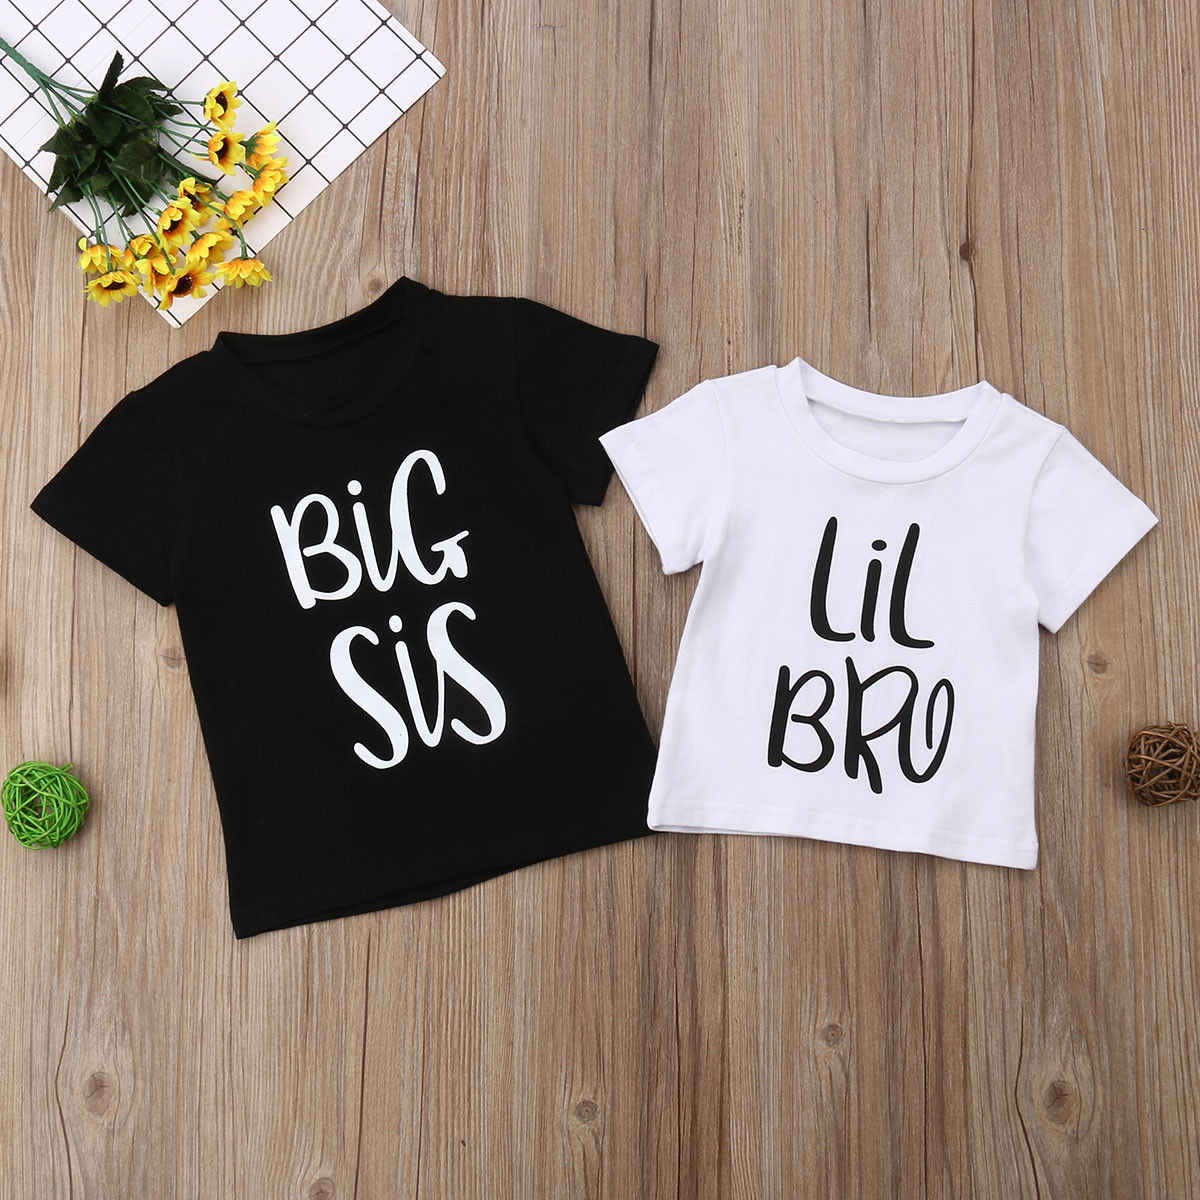 2019 Roblox Hoodies For Boys And Girls Pullover Sweatshirt For Matching Brother And Sister Toddler Kids Clothes Toddlers Fashion From - Detail Feedback Questions About Stylish Hooded Xxxtentacion